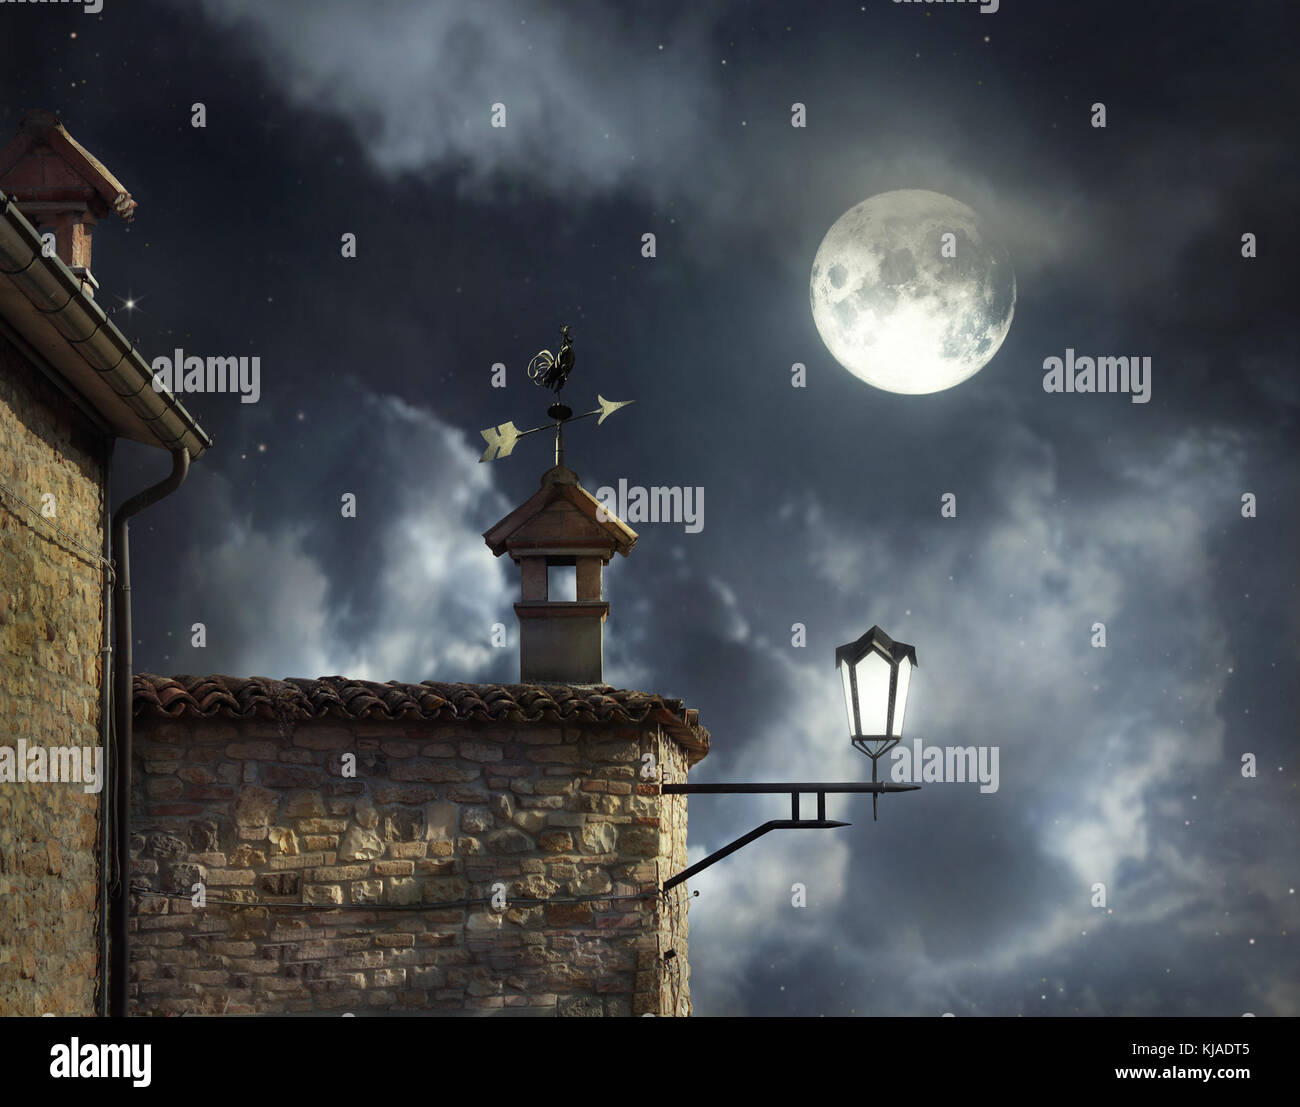 Antique roofs with weather vane rooster and chimneys in a beautiful night sky with full moon and clouds - Stock Image